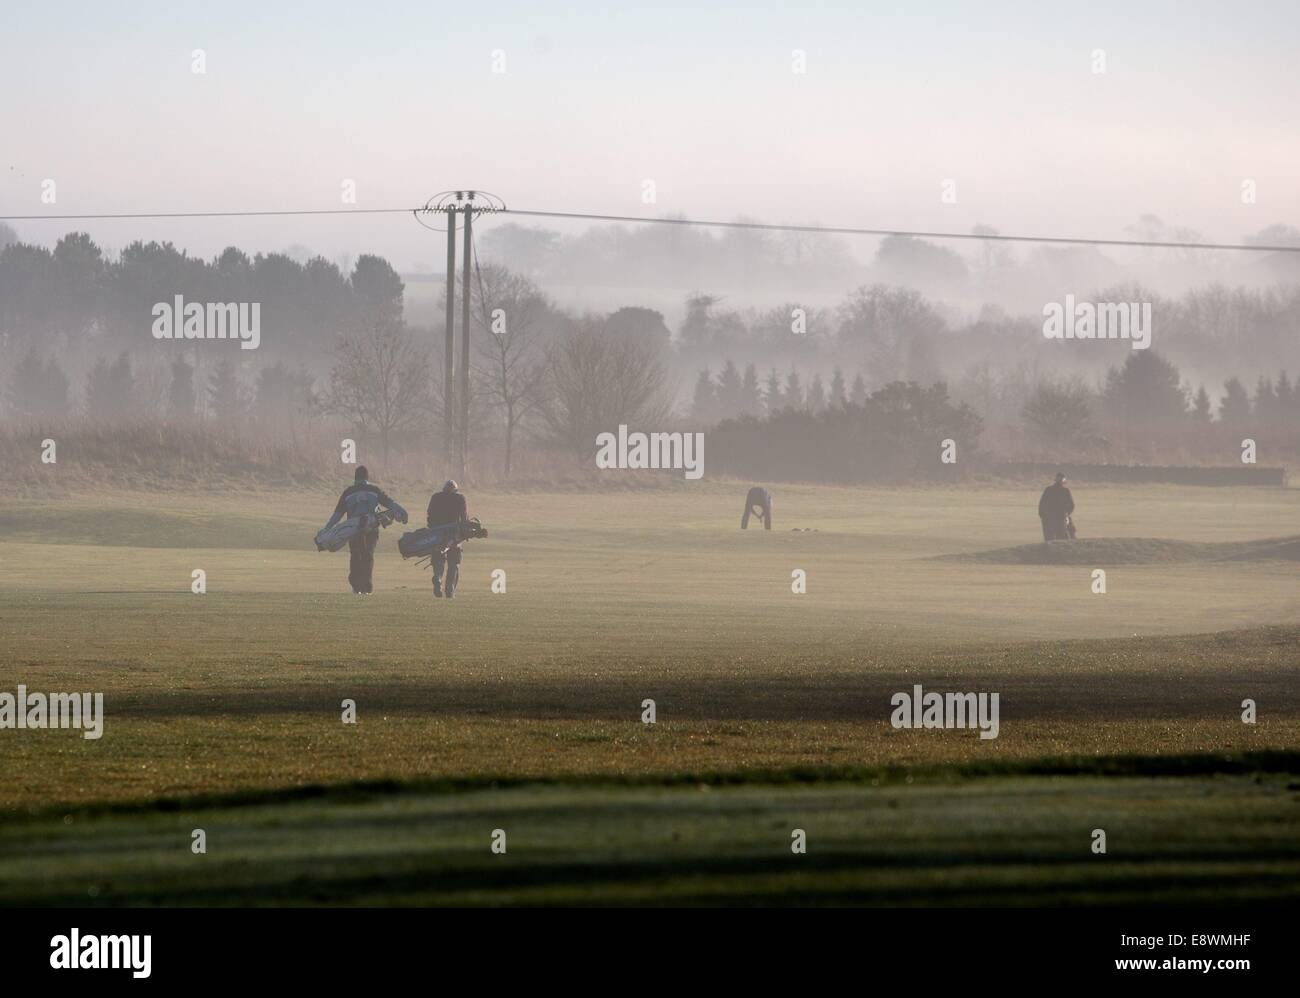 Golfers at Minchinhampton Golf Club enjoy the early morning sunshine, Minchinhampton, Gloucestershire. 19 Jan 2014 - Stock Image